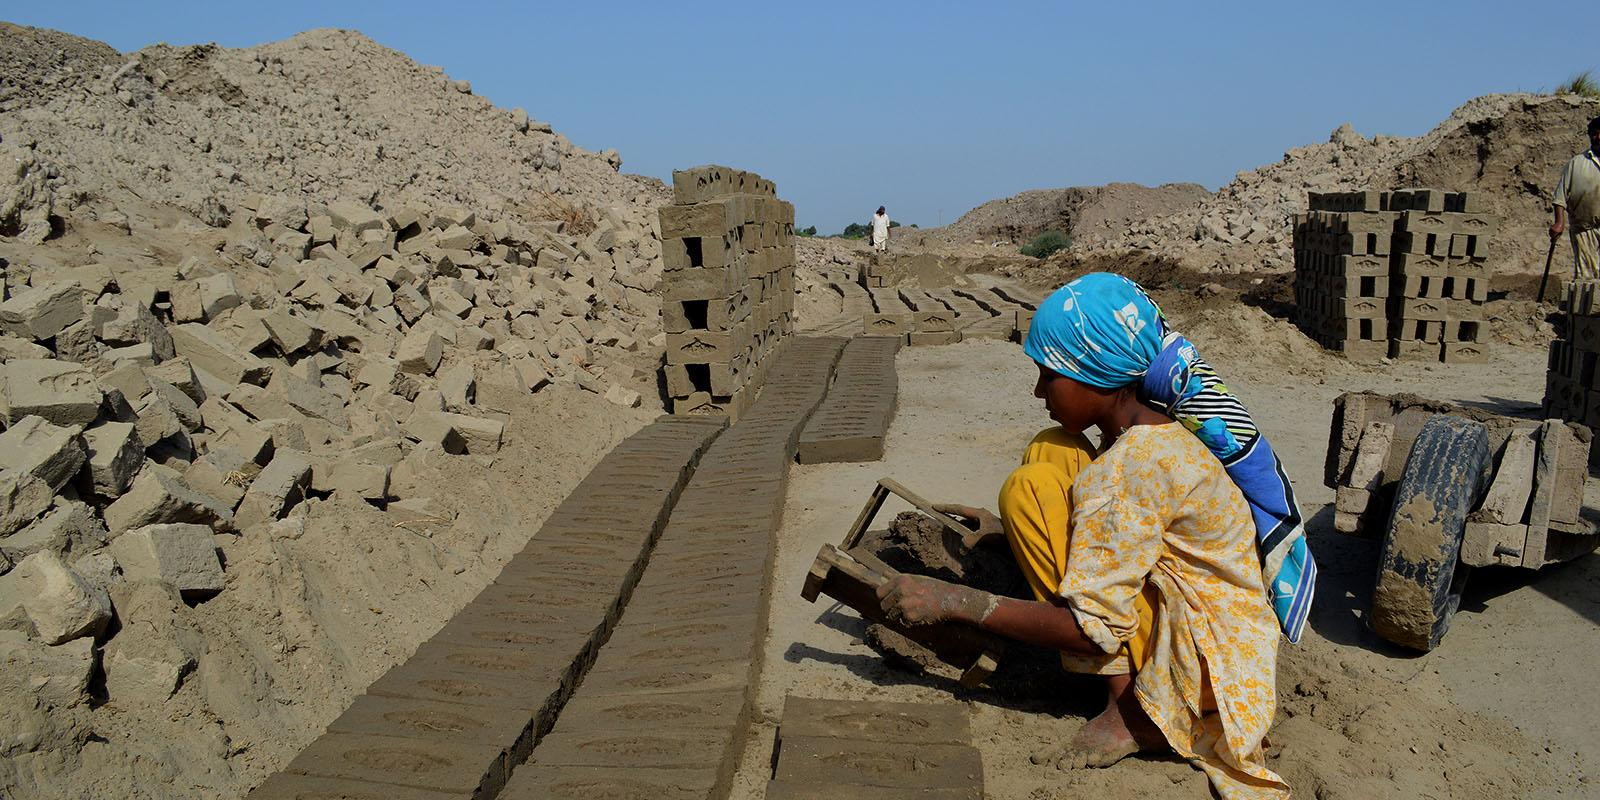 Nosheen making bricks under hot sun